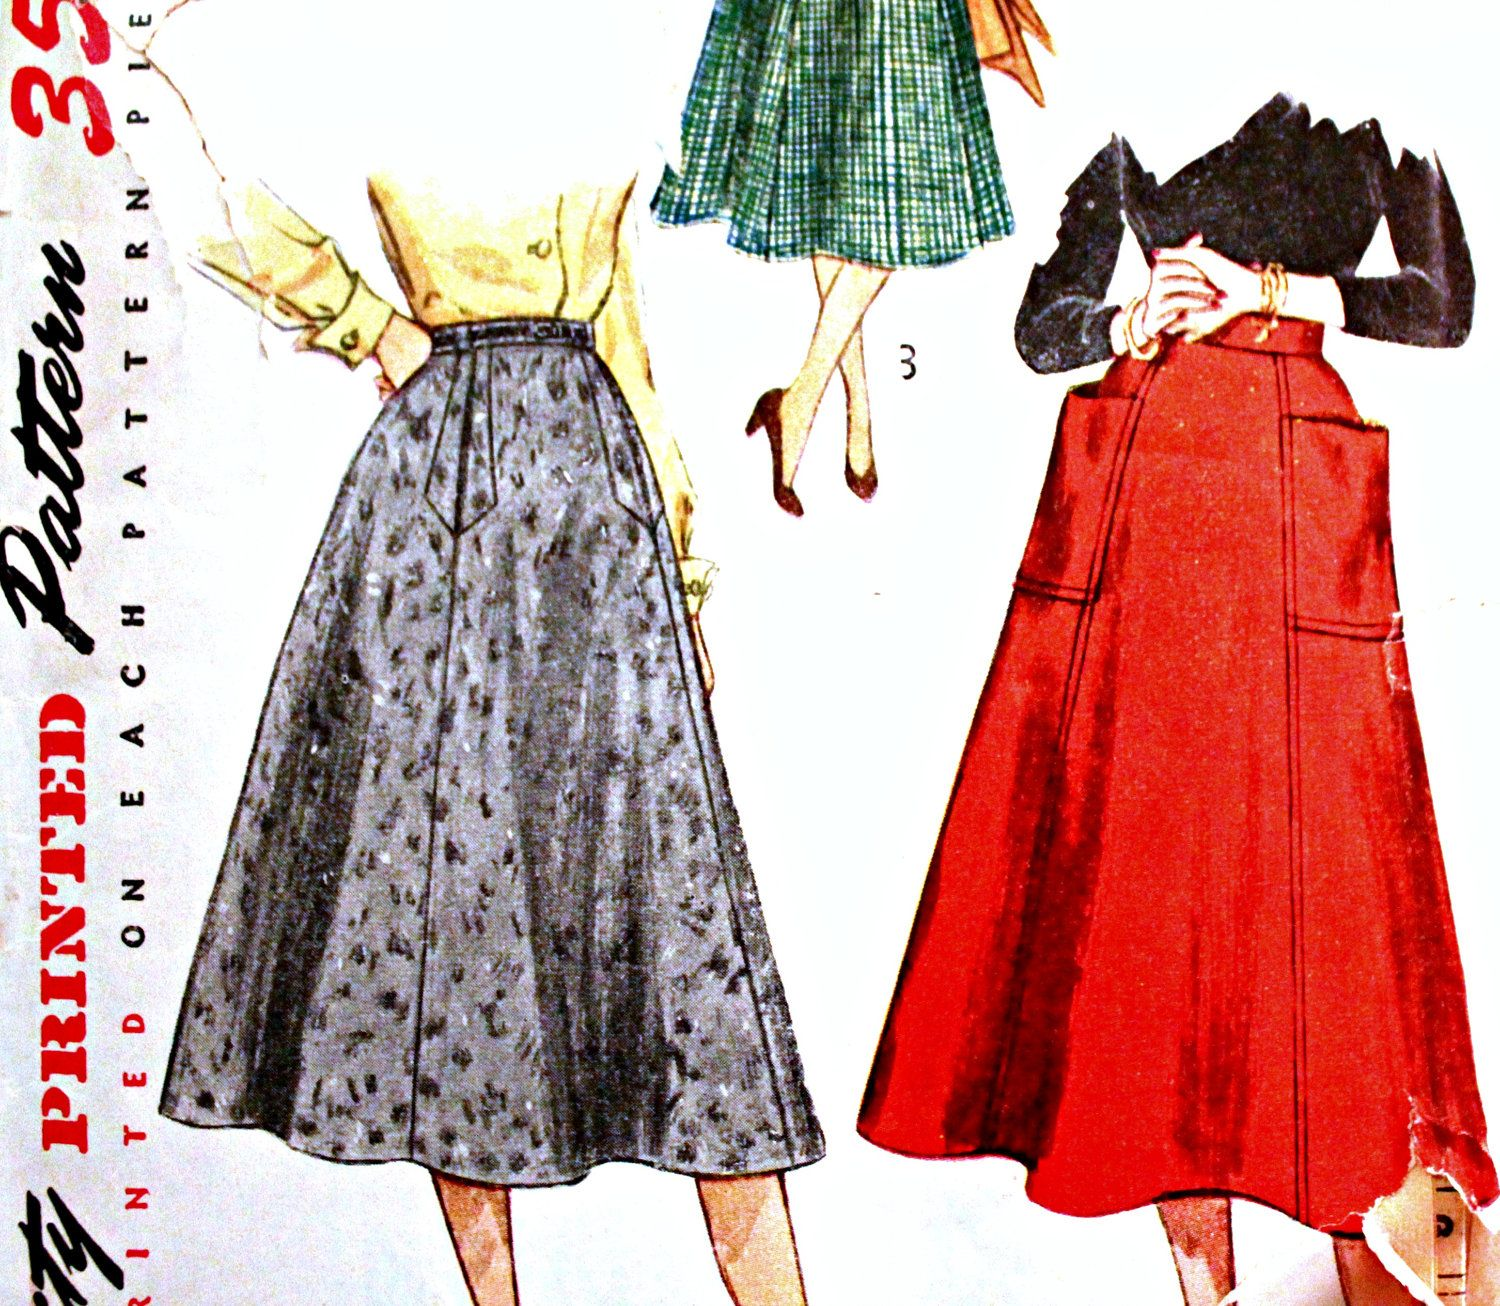 Vintage Sewing Pattern for 50s Full Skirt, Waist 30, Hip 39: Simplicity 4083. $5.00, via Etsy.